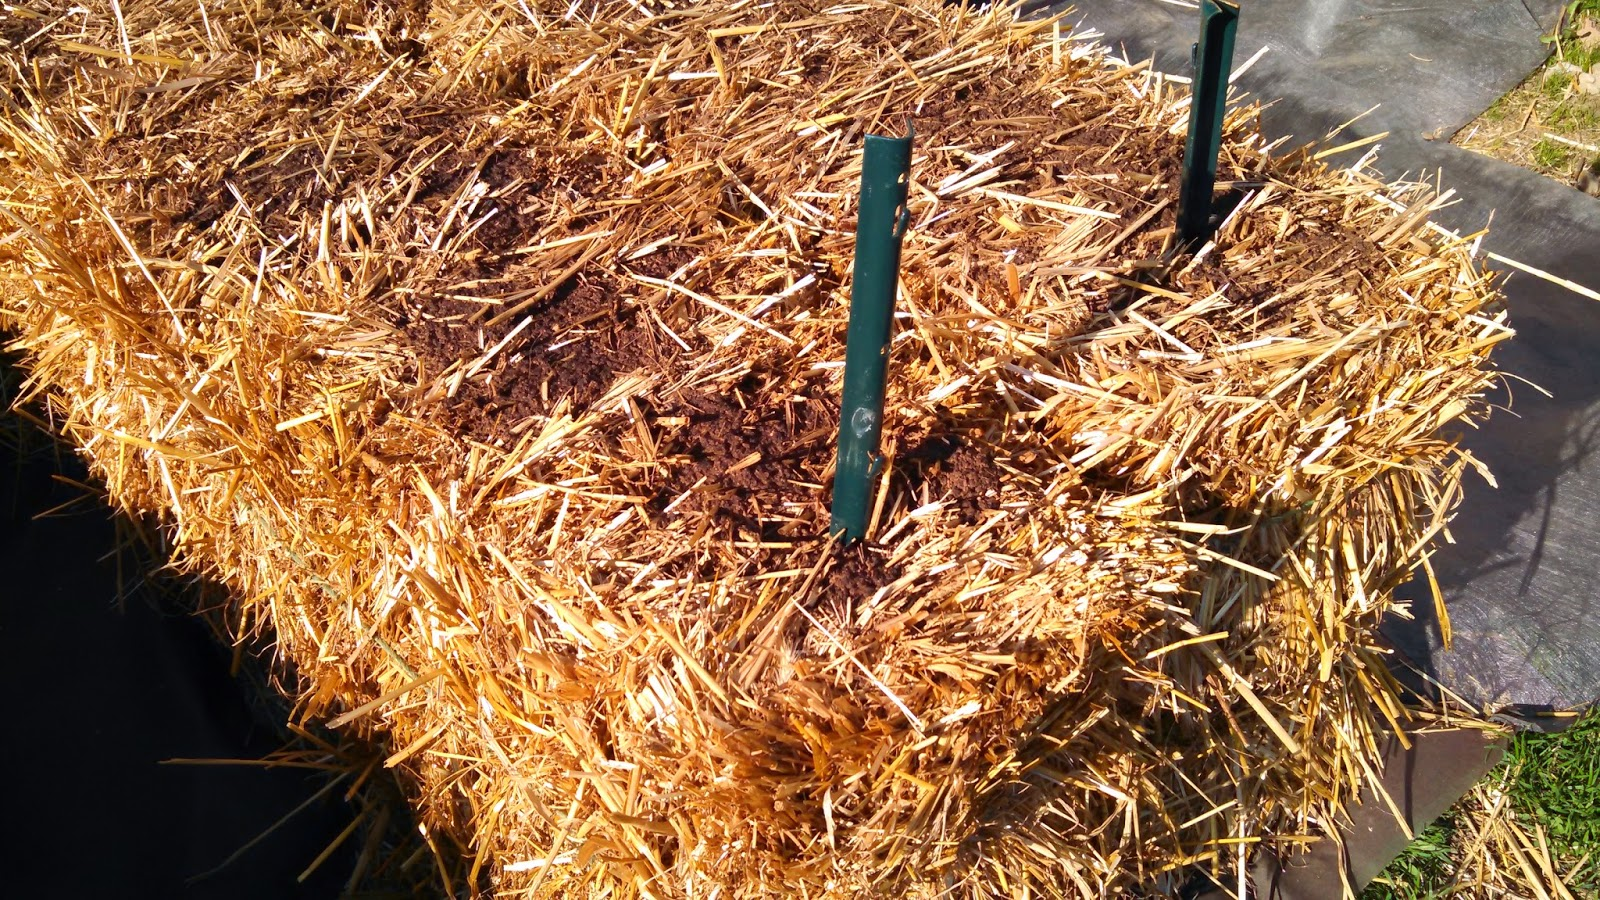 Day 3 of Conditioning the Bales- Before Adding More Fertilizer